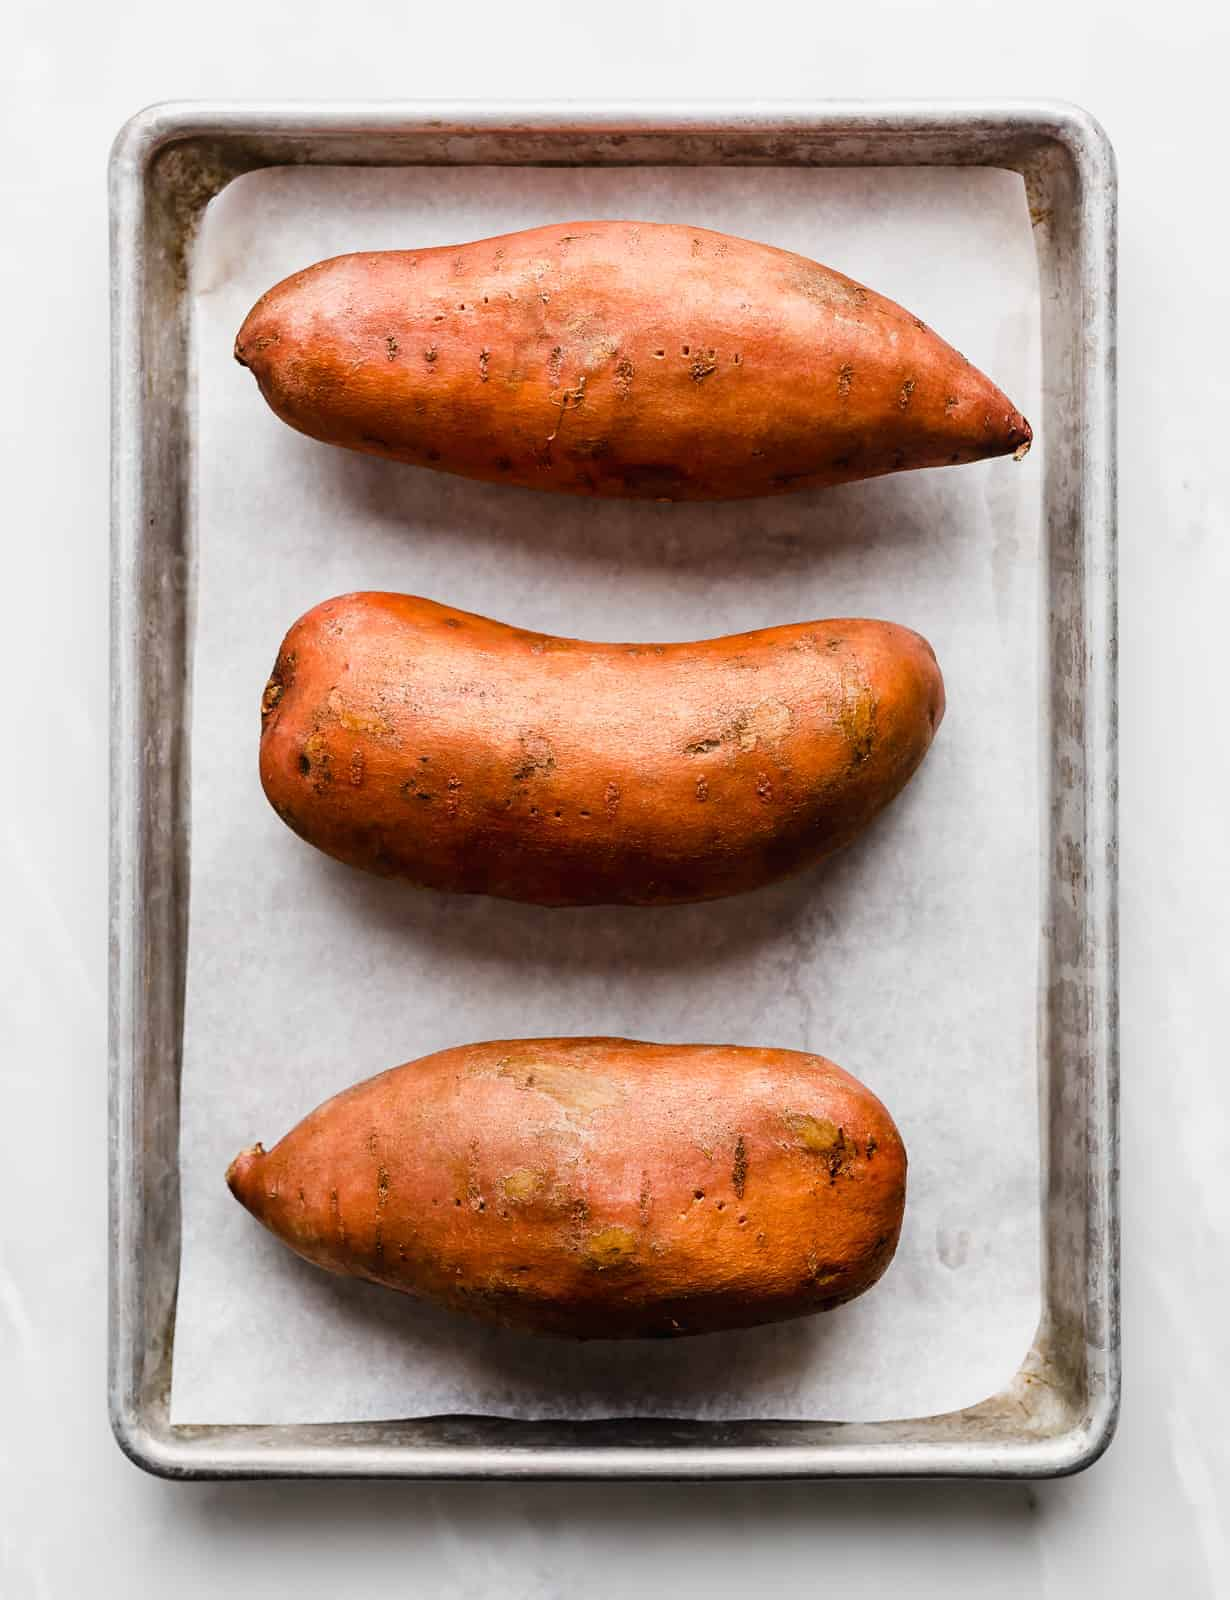 Three large sweet potatoes on a white parchment lined baking sheet.